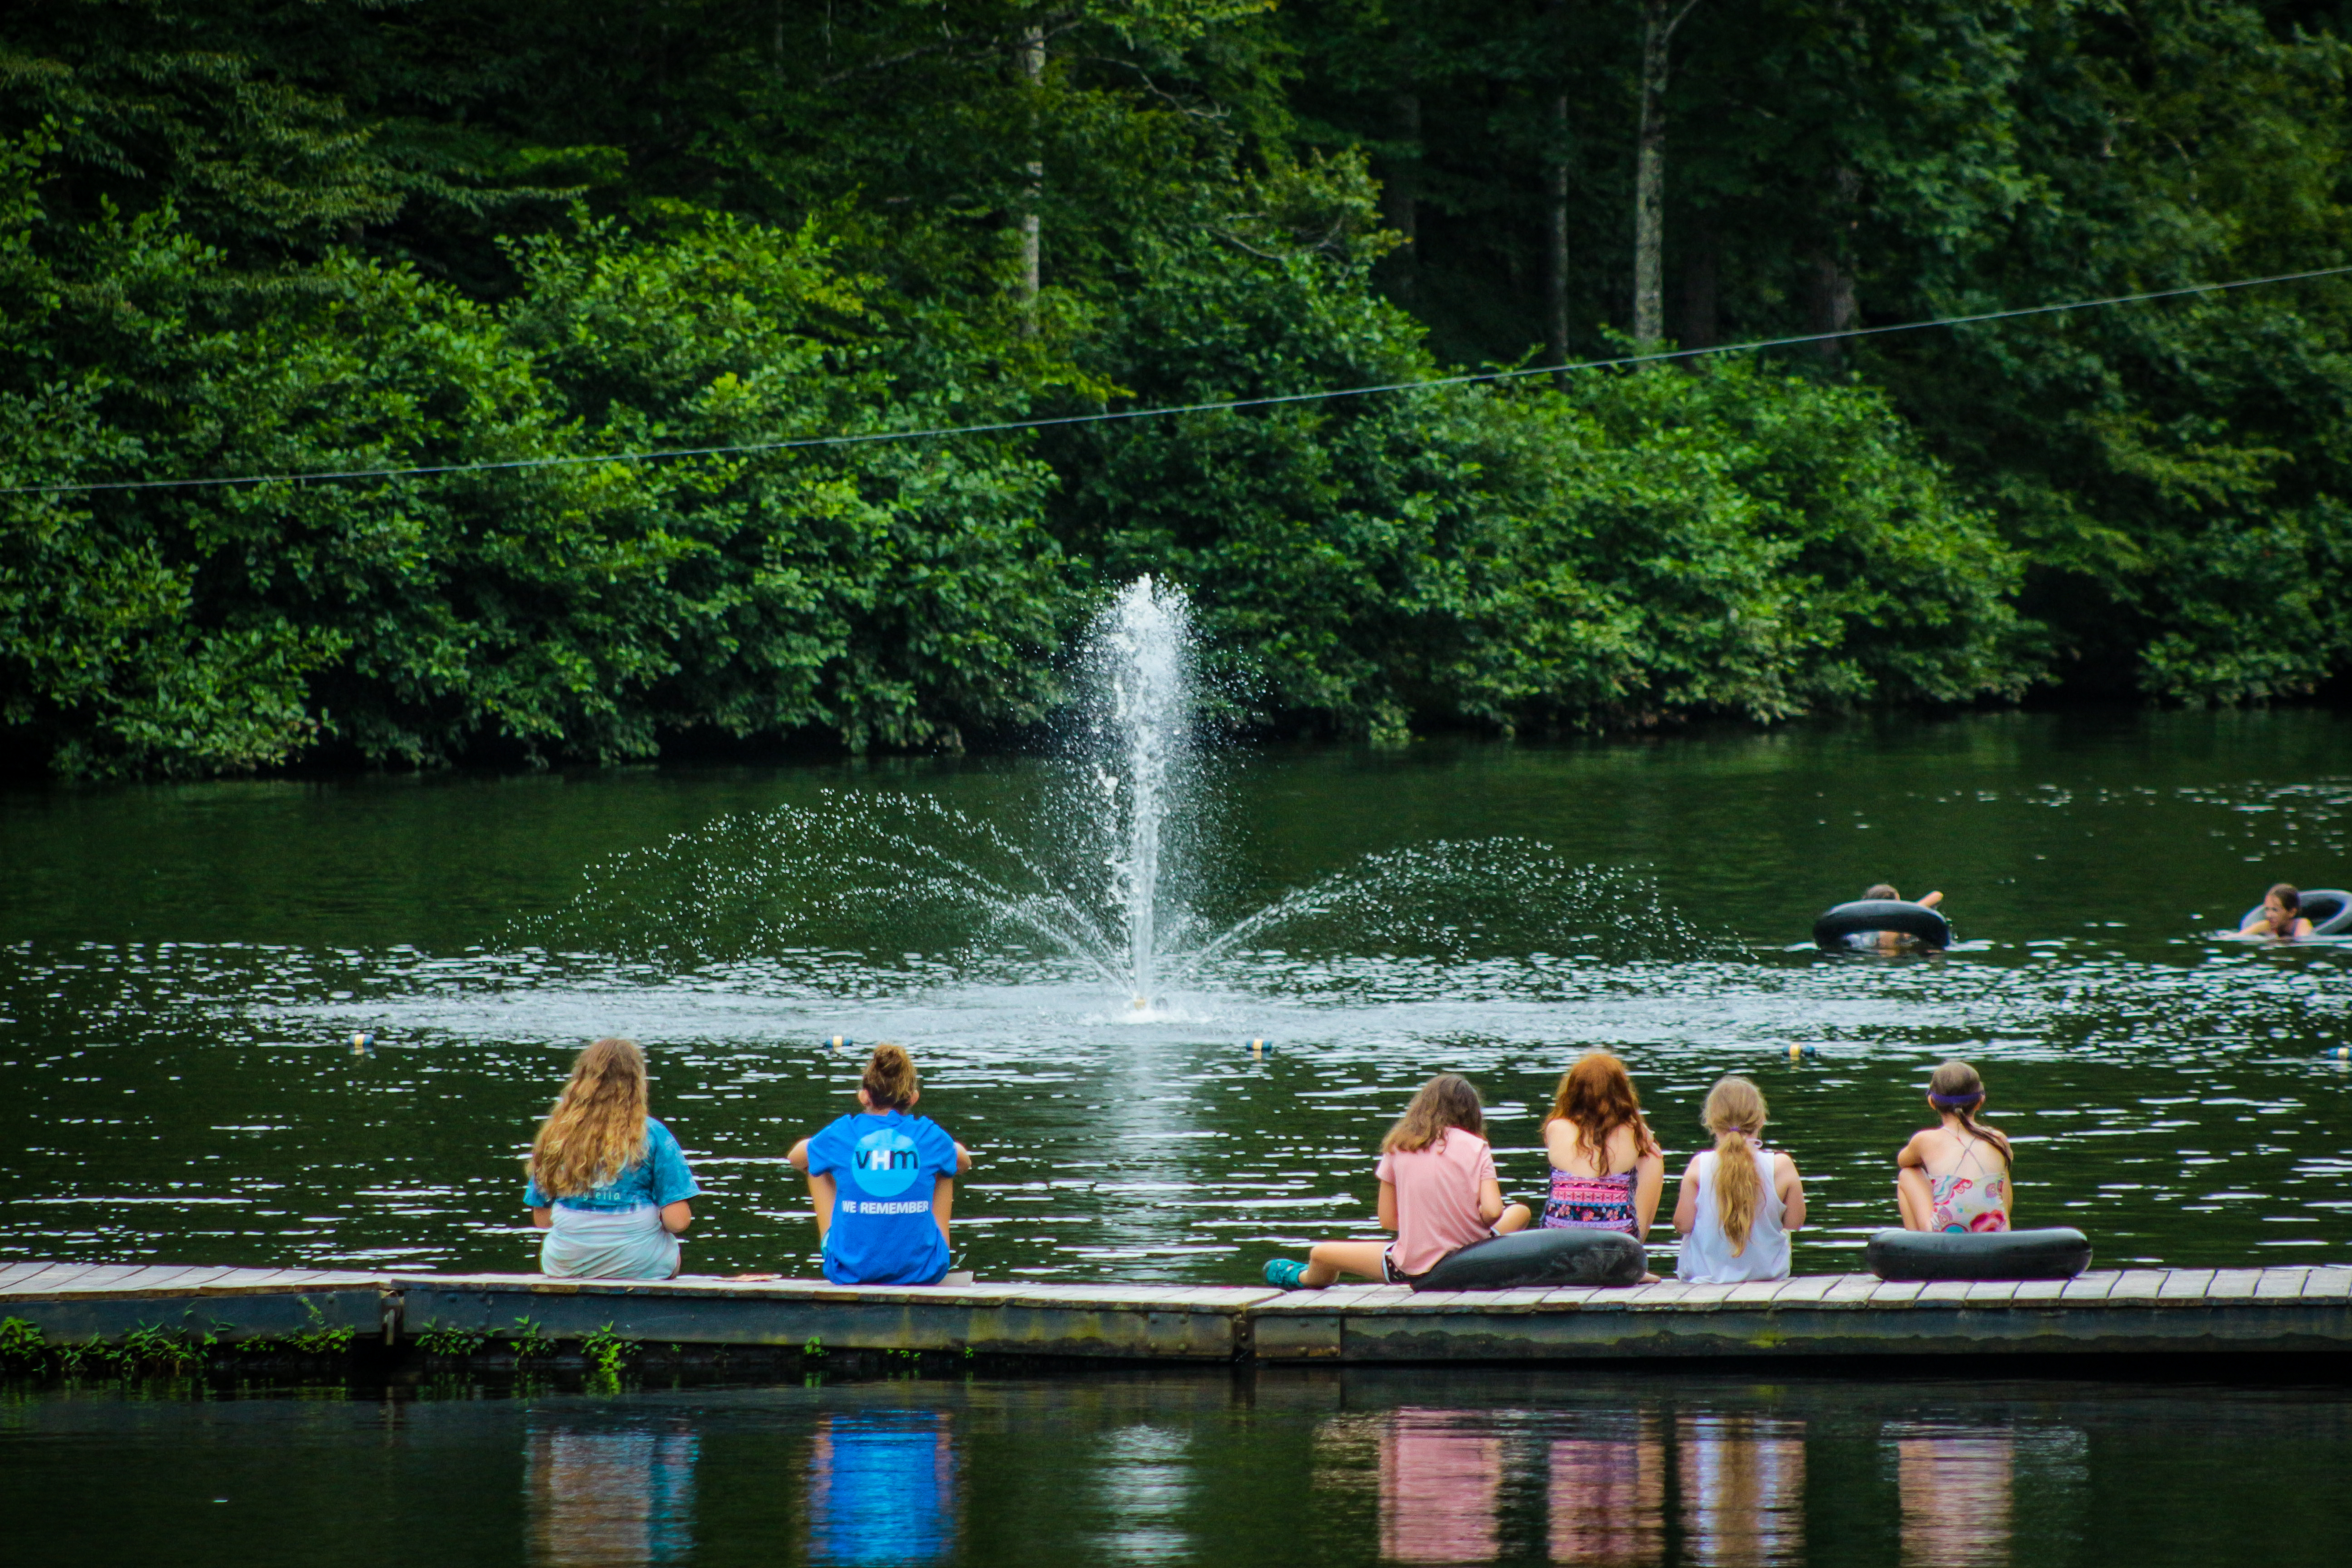 Summer Program - Mentoring | Counselor in Training (CIT) at Camp Friendship